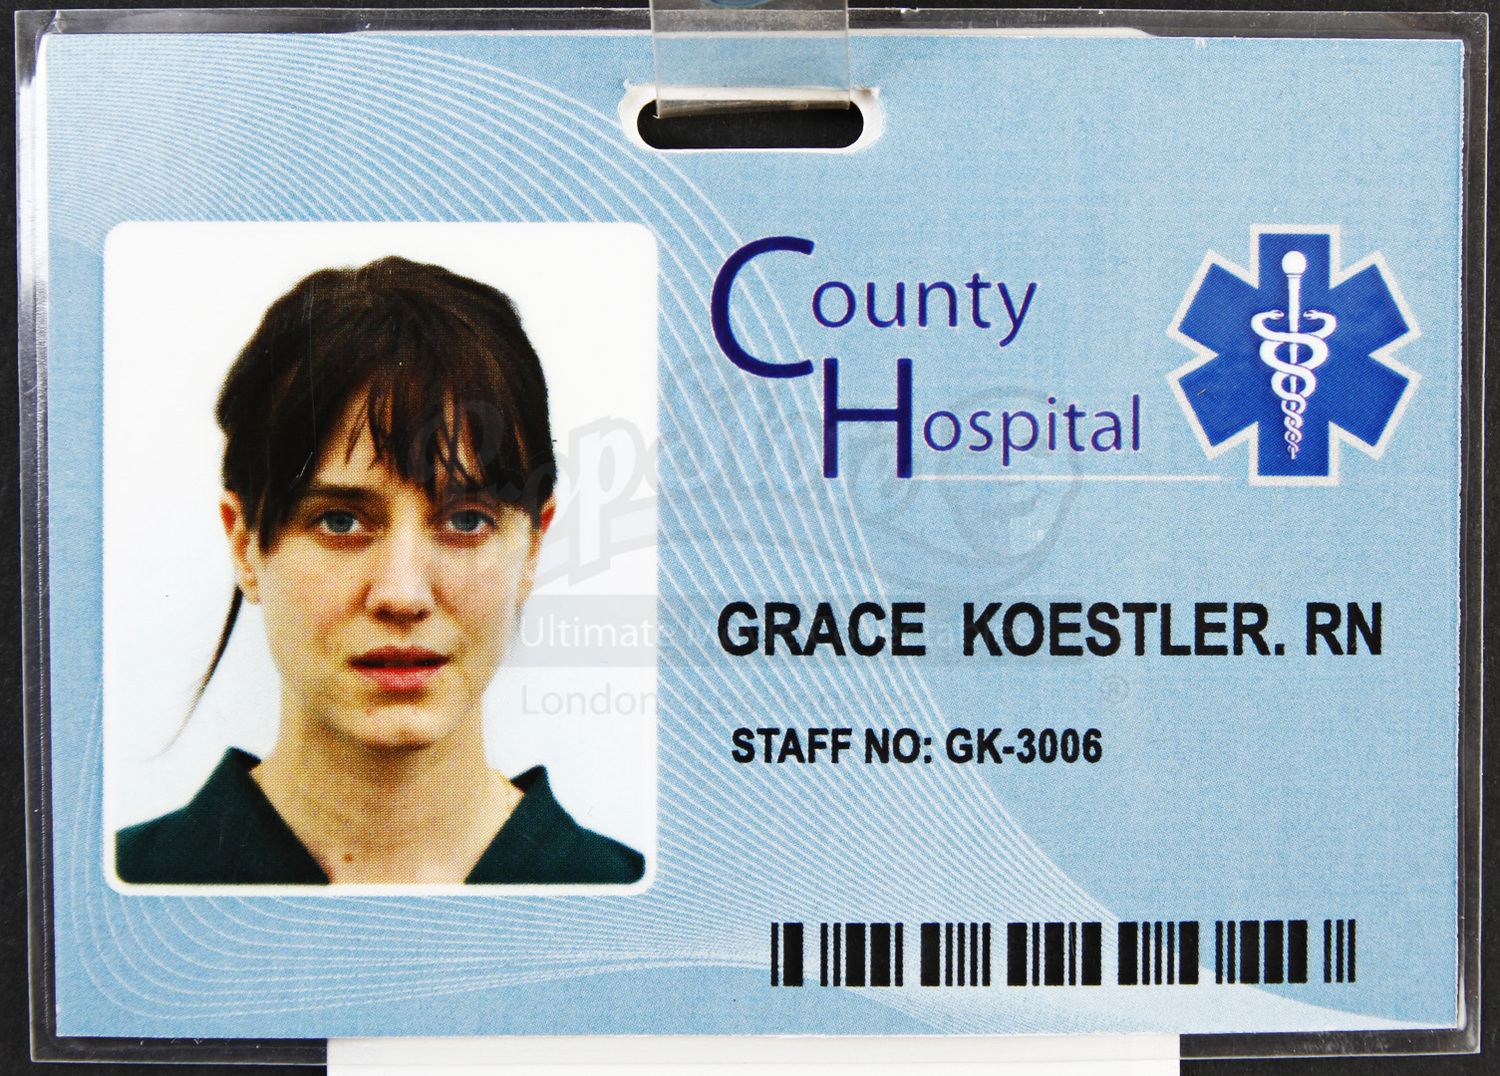 grace koestlers  nadia townsend  hospital badge and access